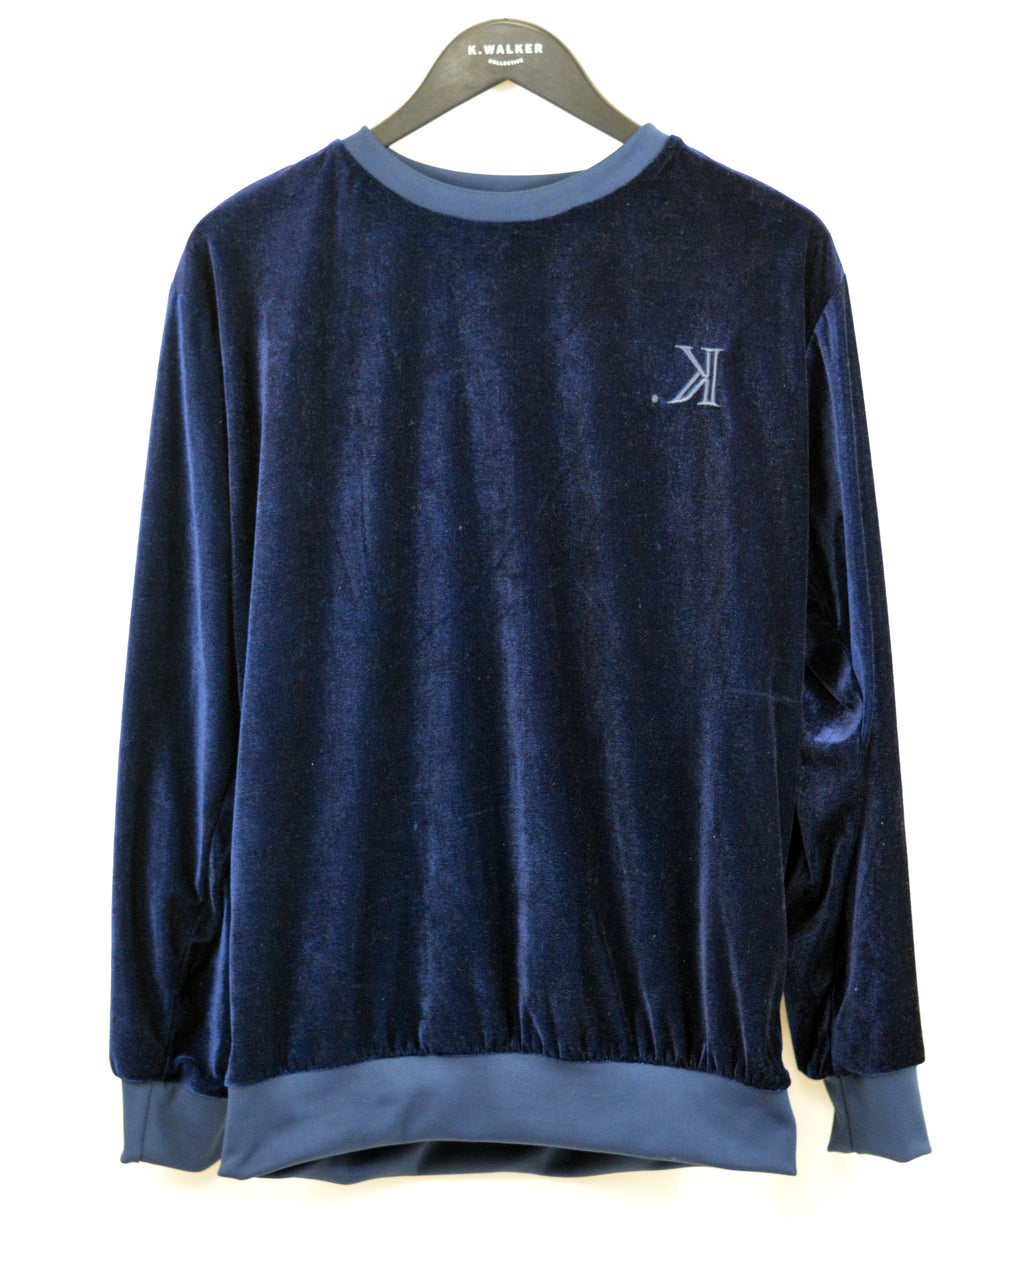 Signature Velour Sweatshirt